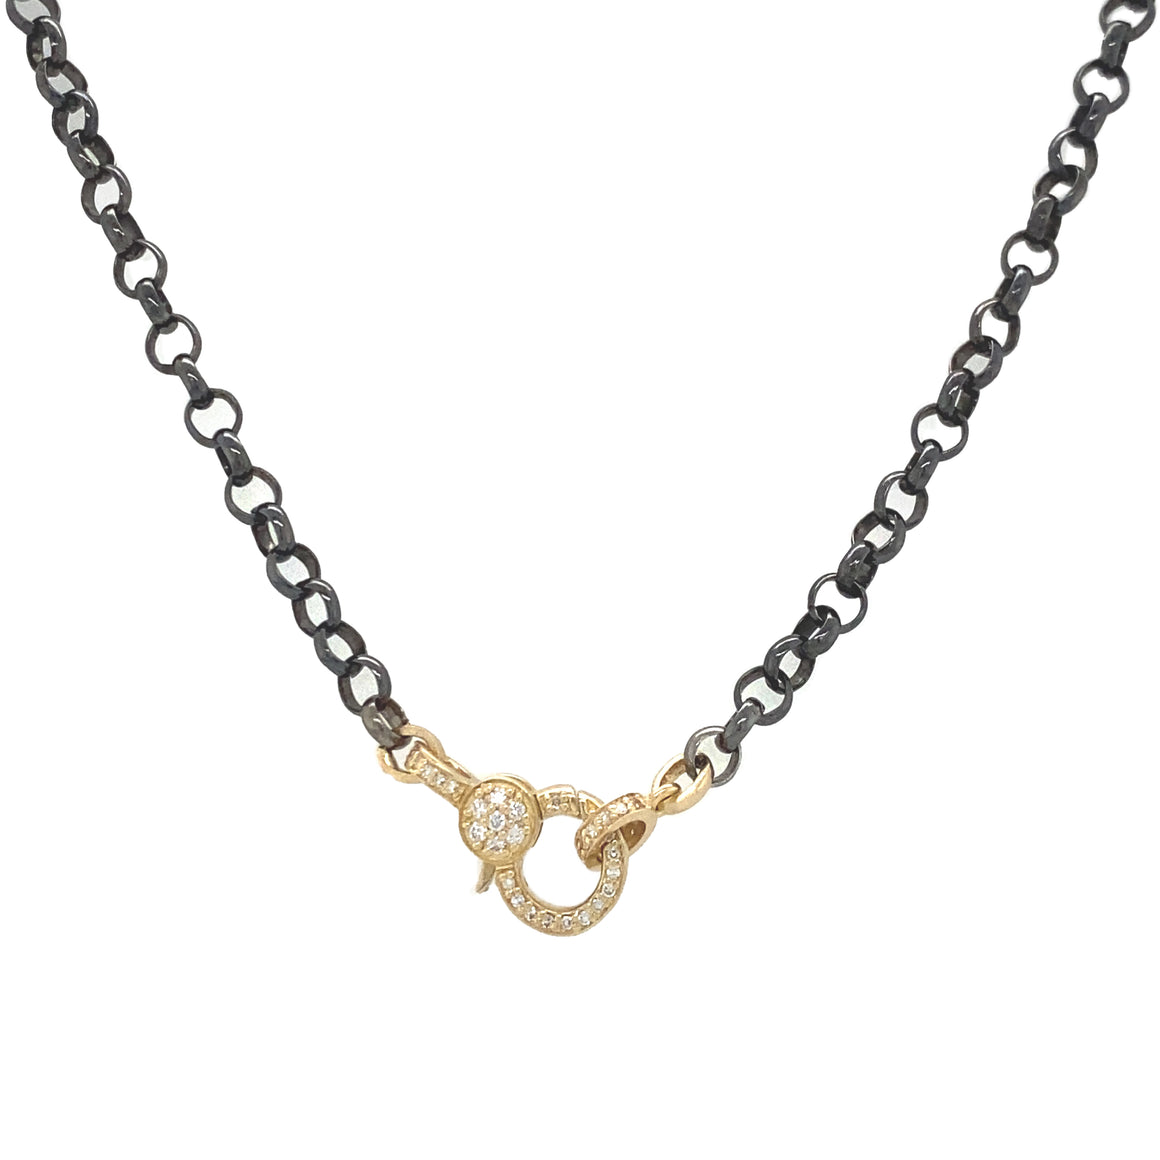 Chain with Gold Diamond Clasp